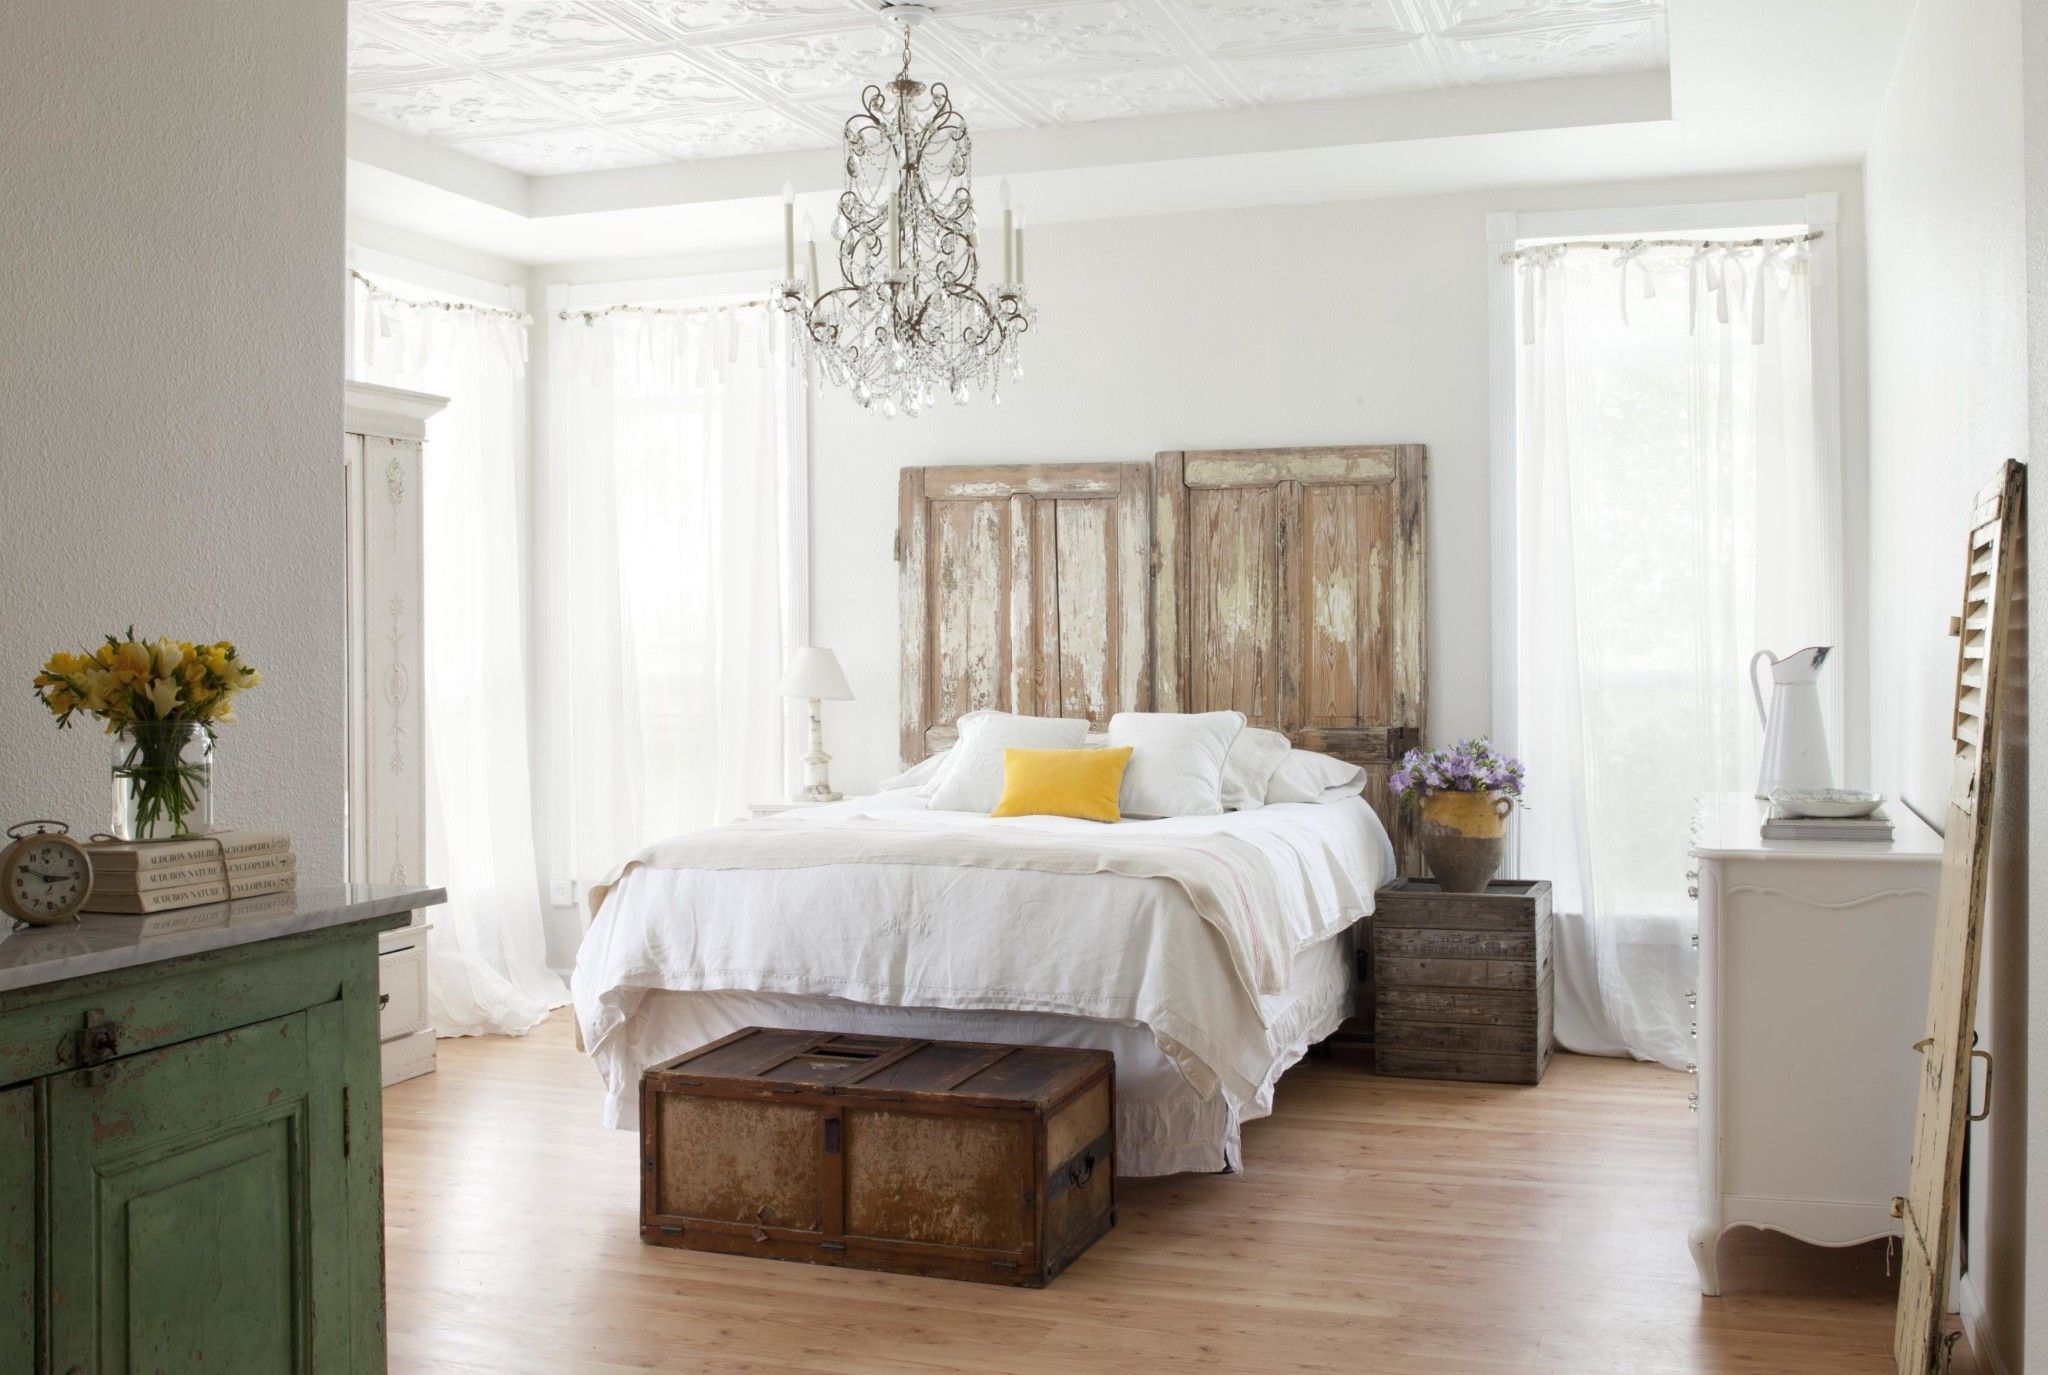 Decorative Bed Canopy Vintage Interior Design Style